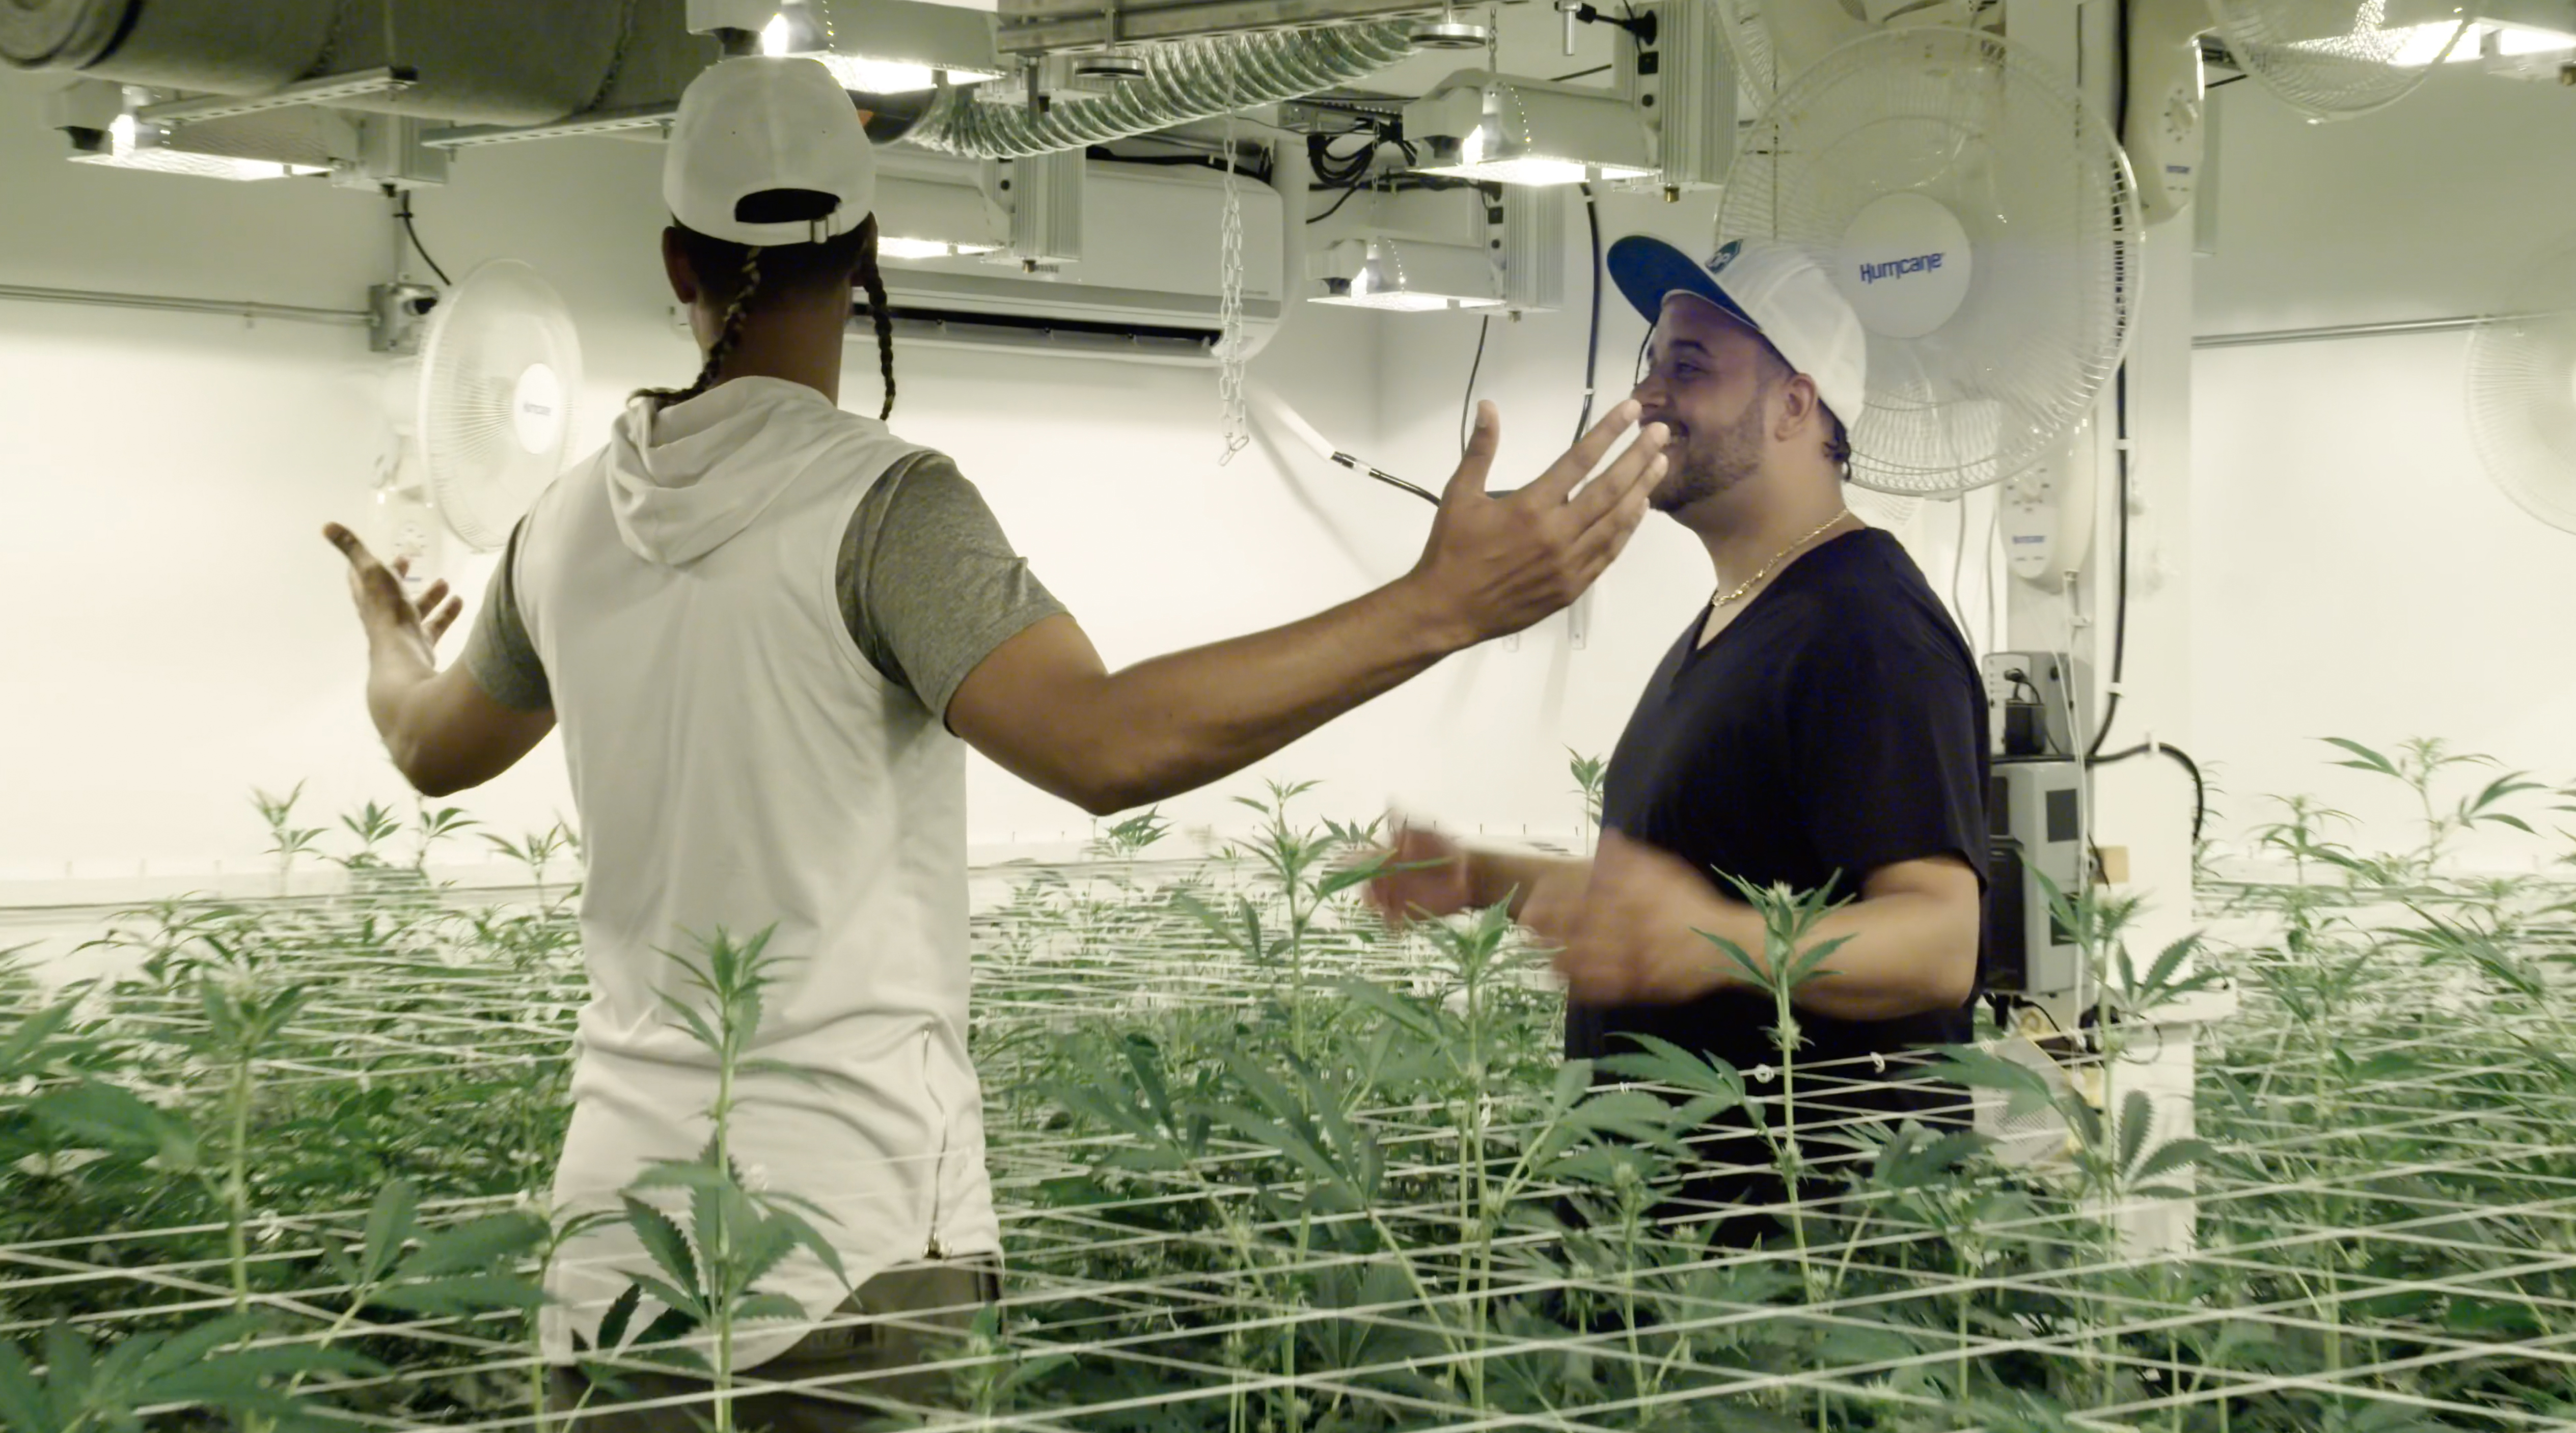 'The Next Marijuana Millionaire' mixes cannabis and reality competition